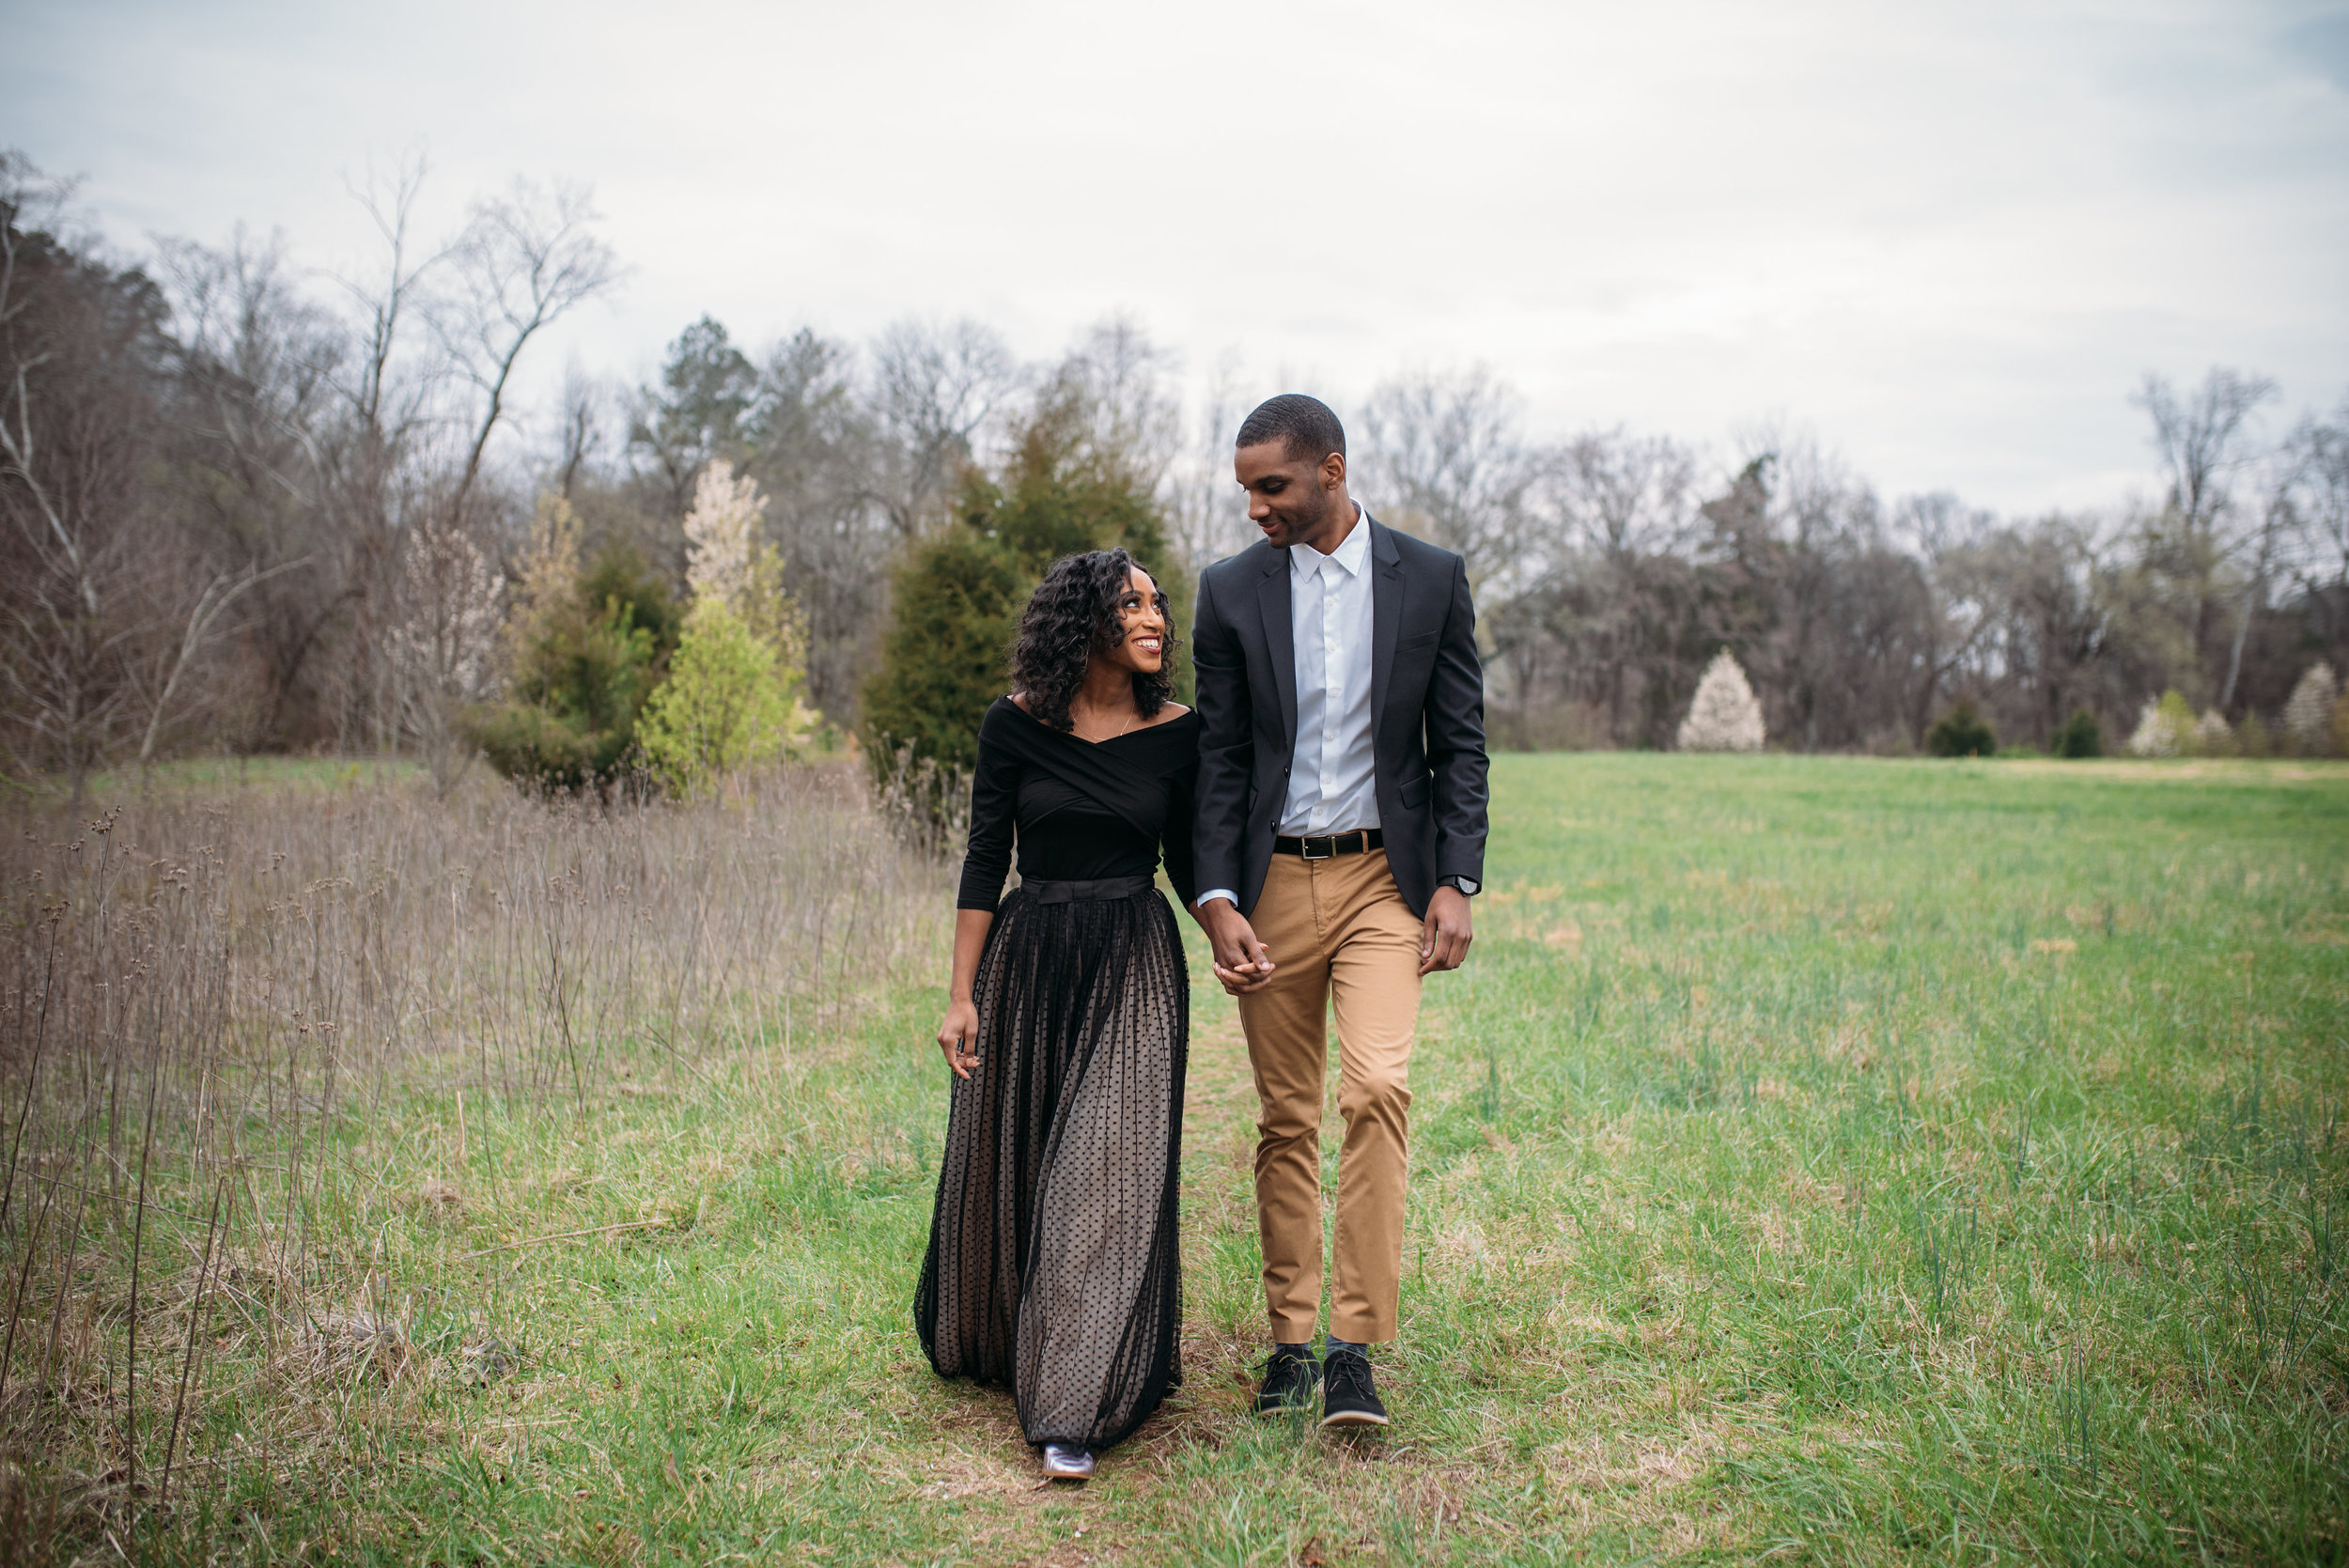 merritt's pasture engagement session - chapel hill wedding photographer - north carolina wedding photographer